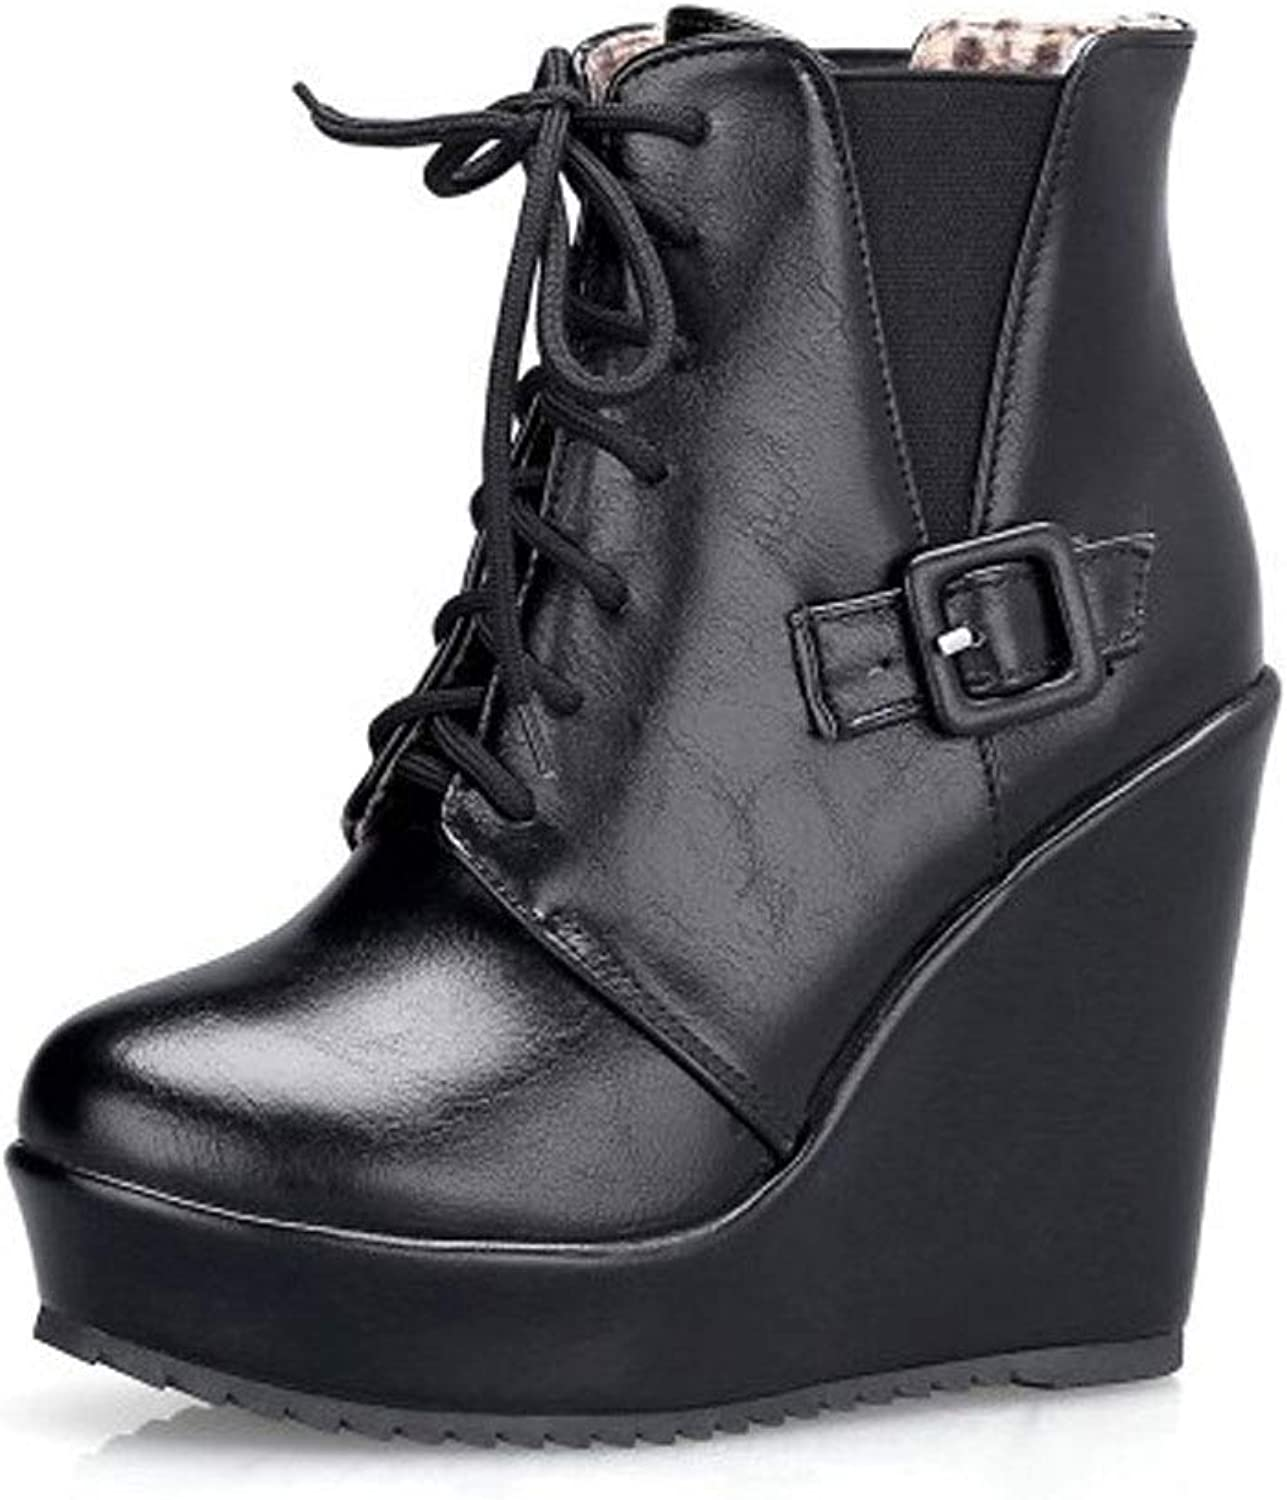 Wedge Short Boots, High Heels Ankle Boots Waterproof Platform Laceing Low Boots Round Head Martin shoes Women's Non-Slip Knight shoes